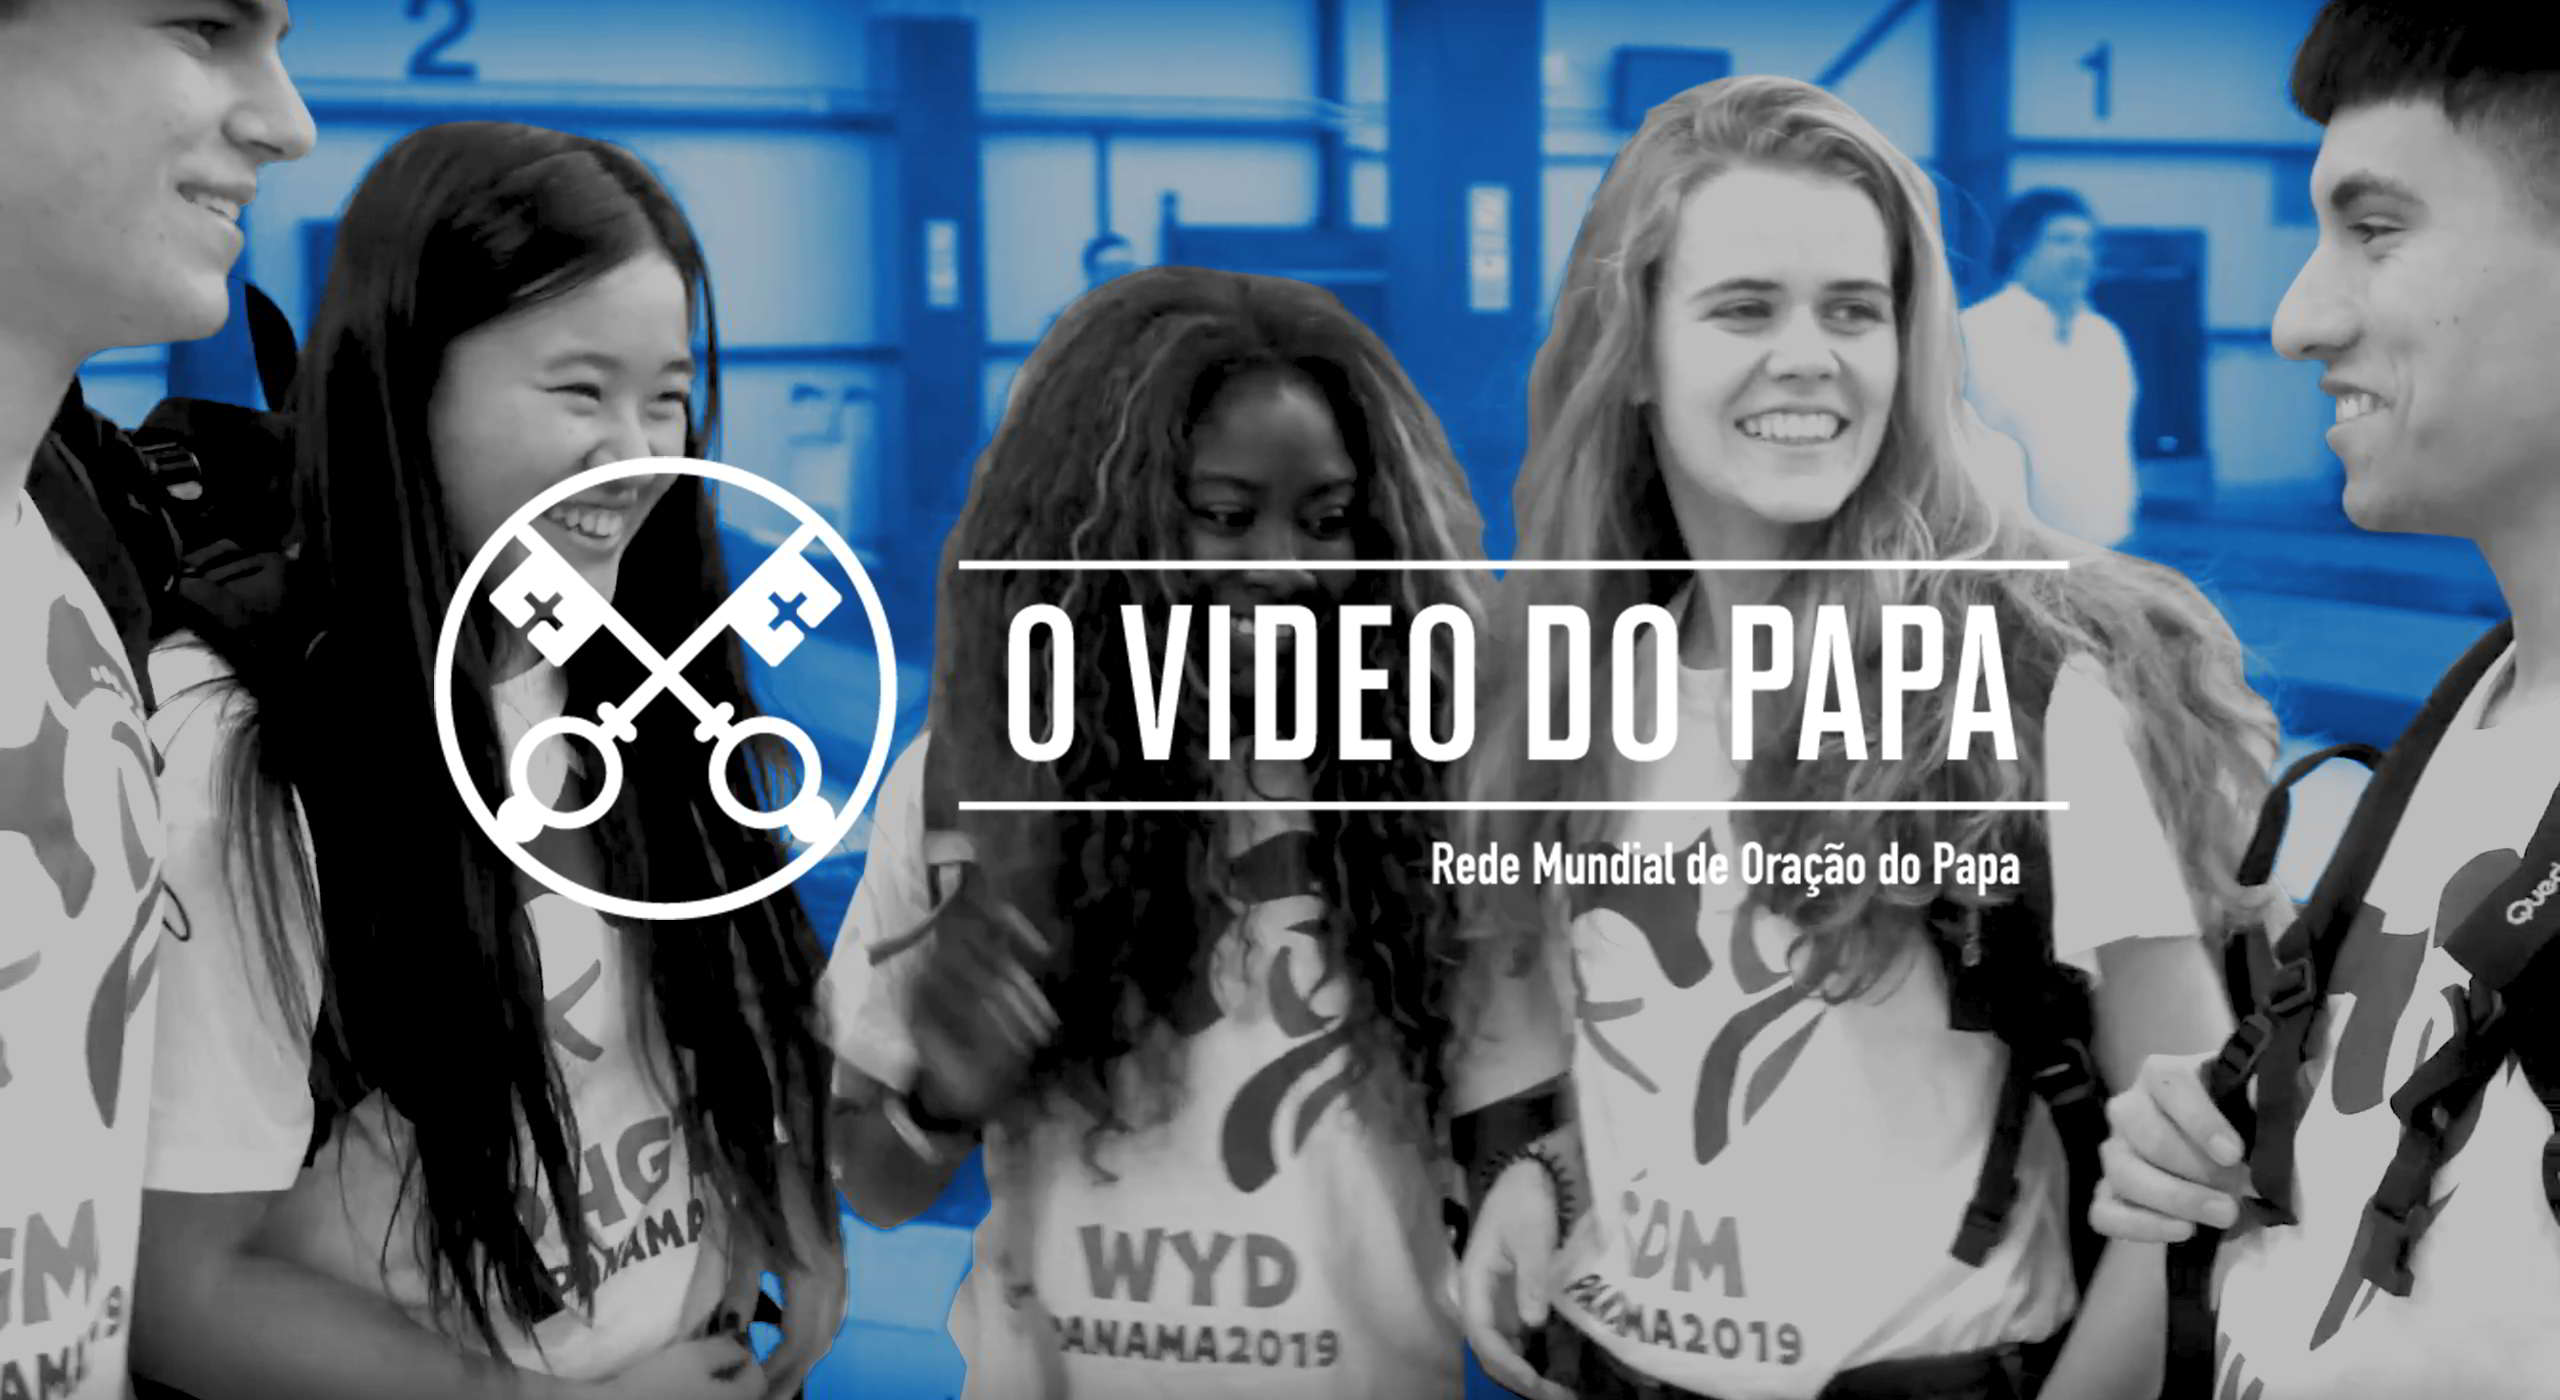 Official-Image-TPV-1-2019-4-PT-O-Video-do-Papa-Jovens-na-escola-de-Maria